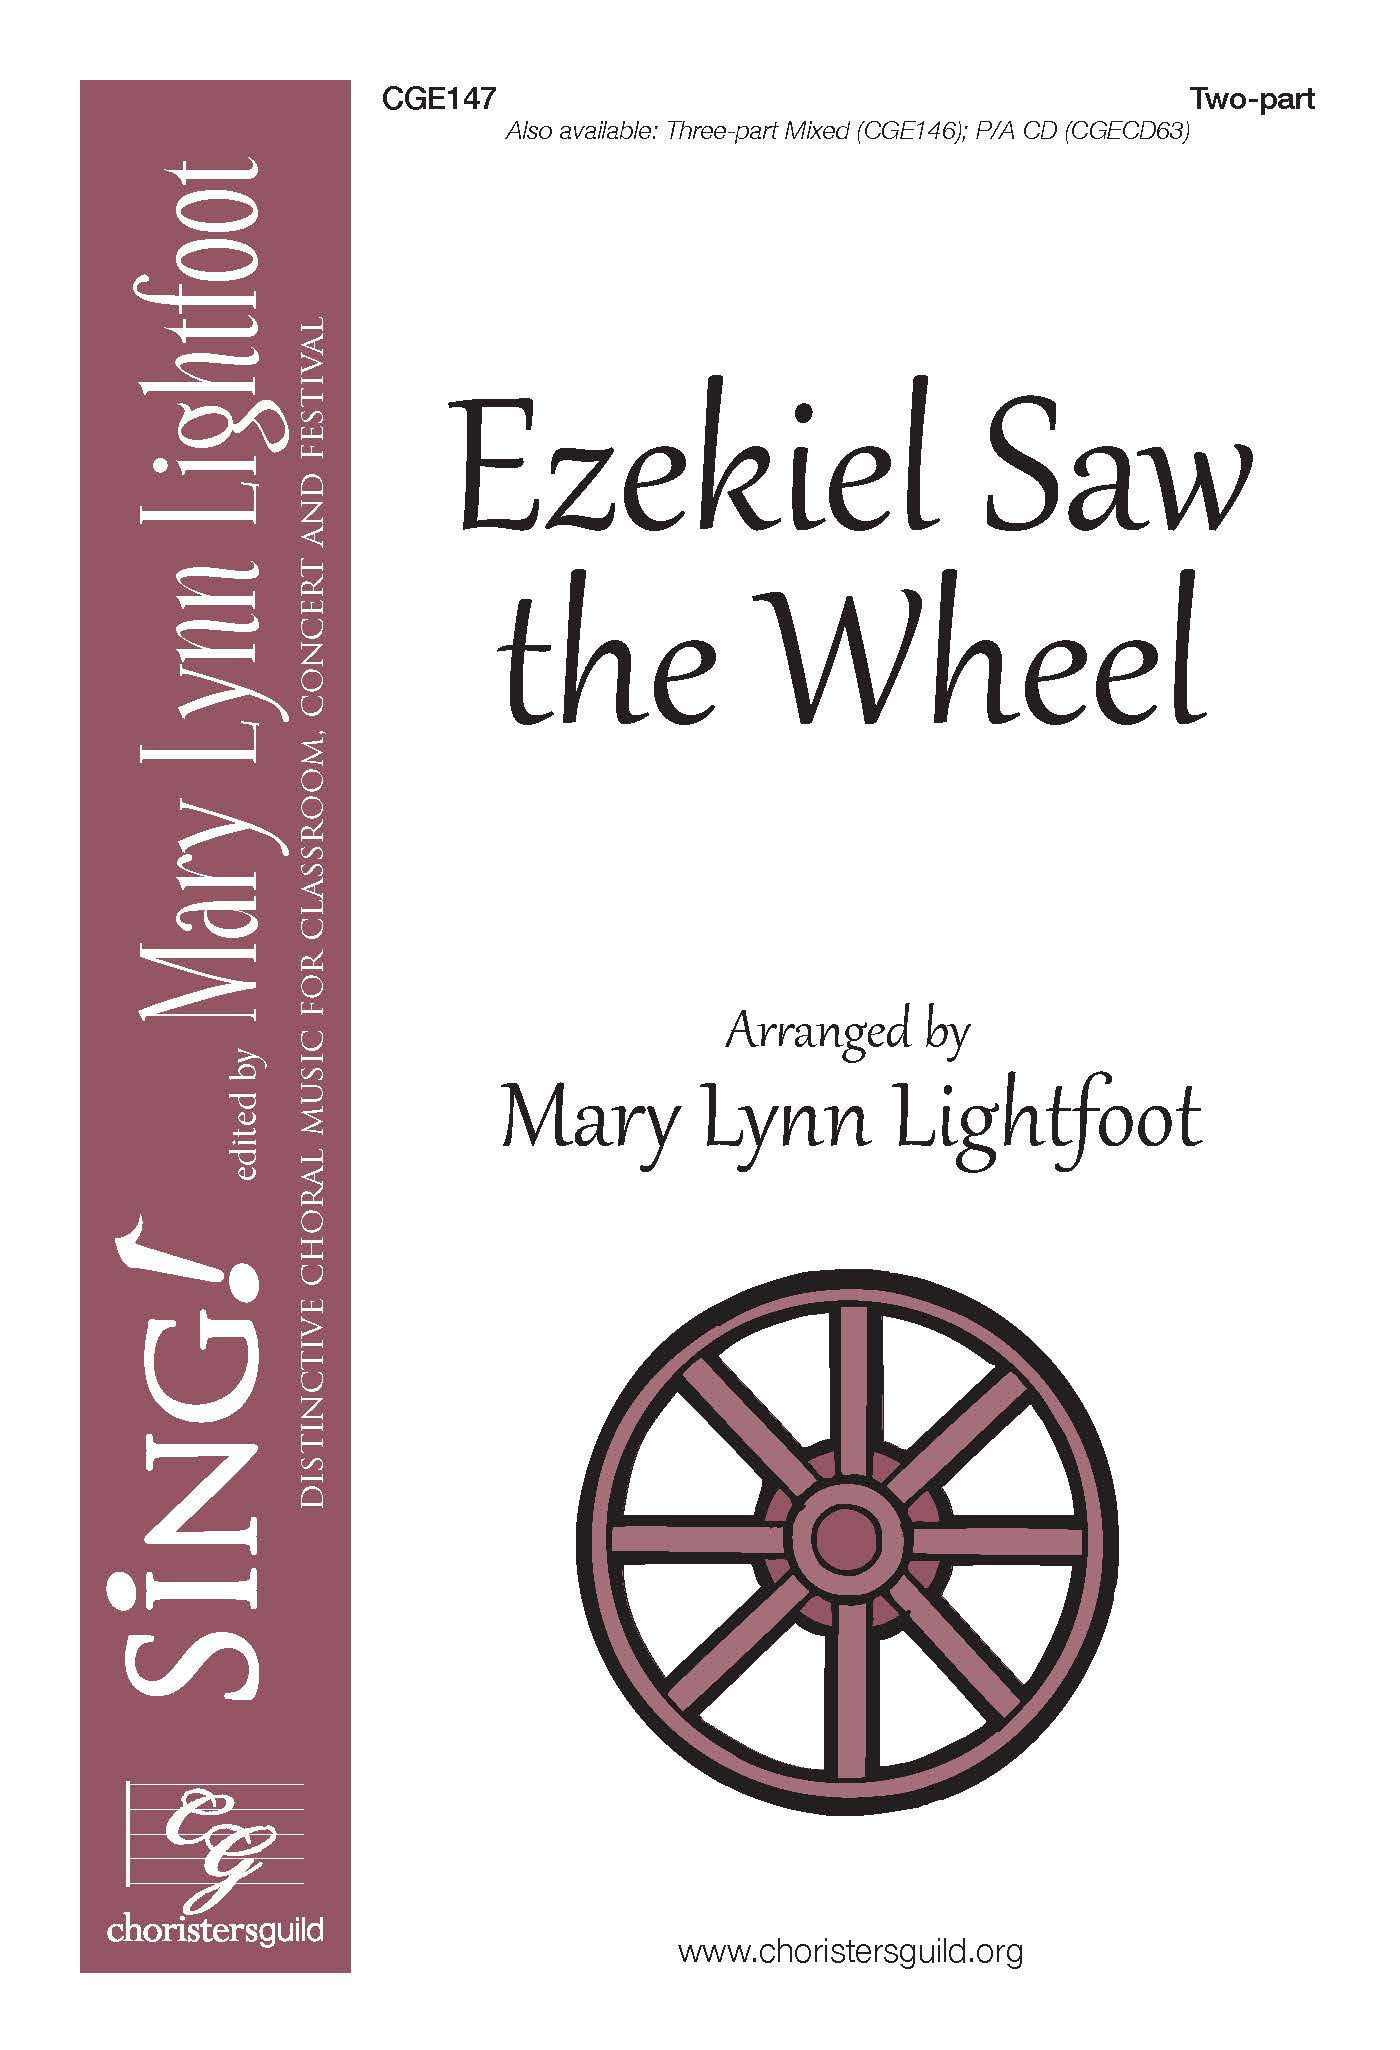 Ezekiel Saw the Wheel Two-part